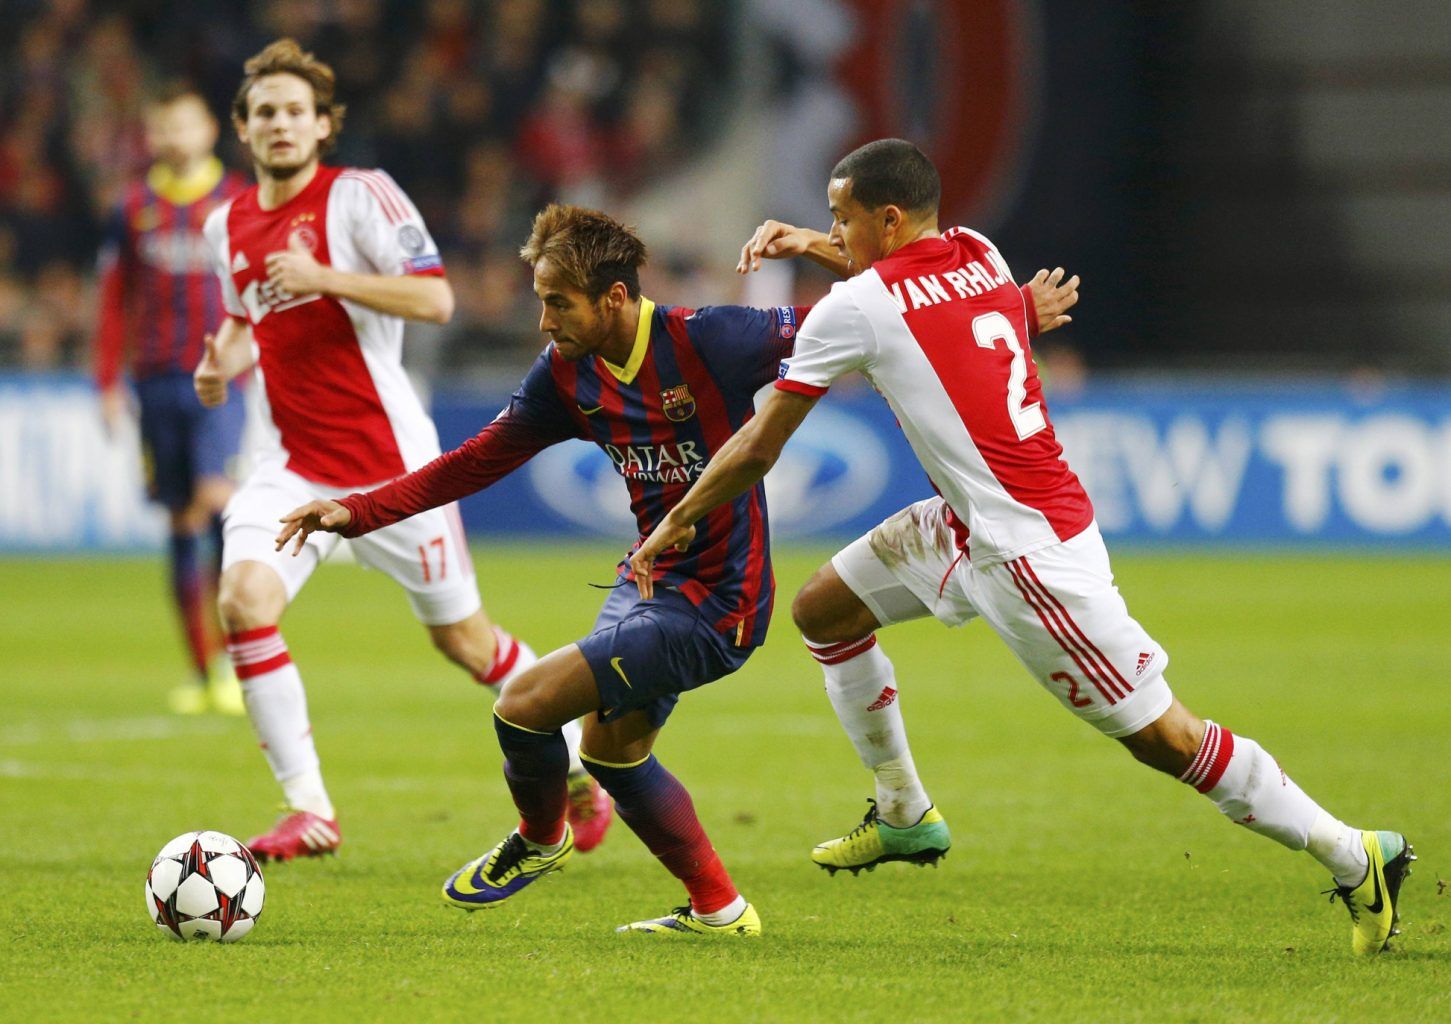 Neymar escaping the marking of an Ajax defender